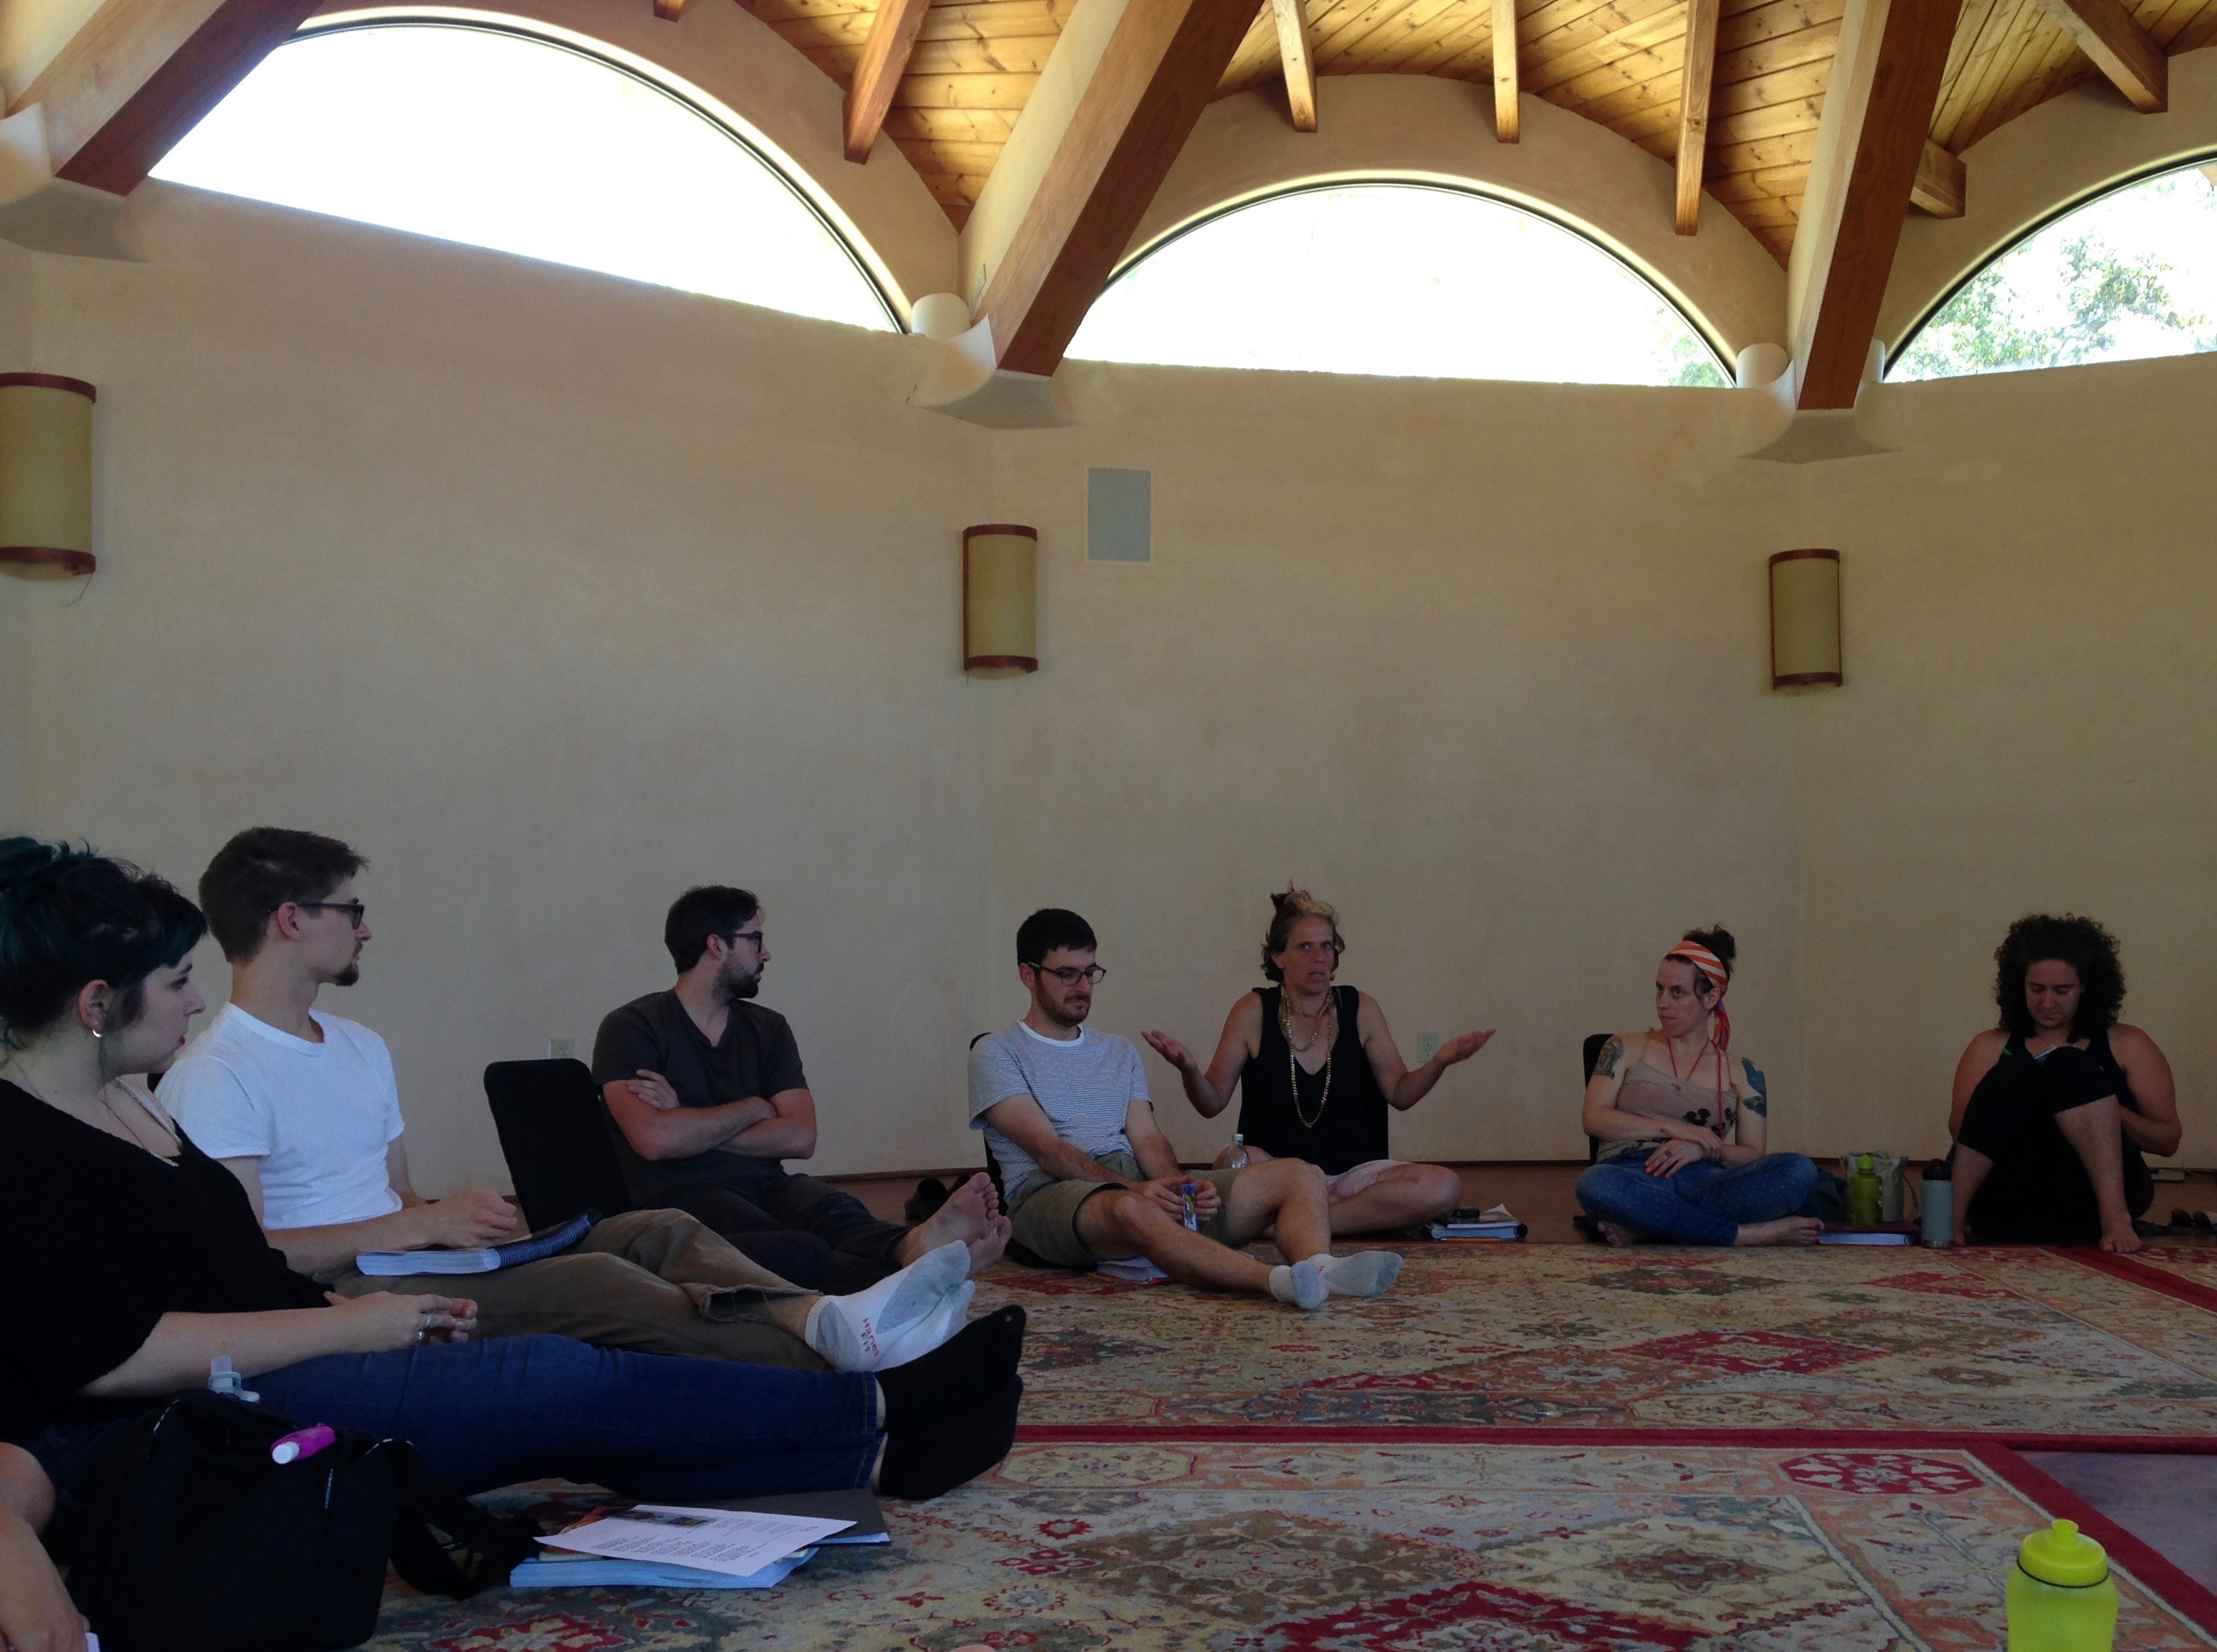 "<p>The Helix Project in Ojai, <span class=""caps"">CA</span>. Photo by Madeleine Cohen, with thanks to the Helix&nbsp;Project</p>"